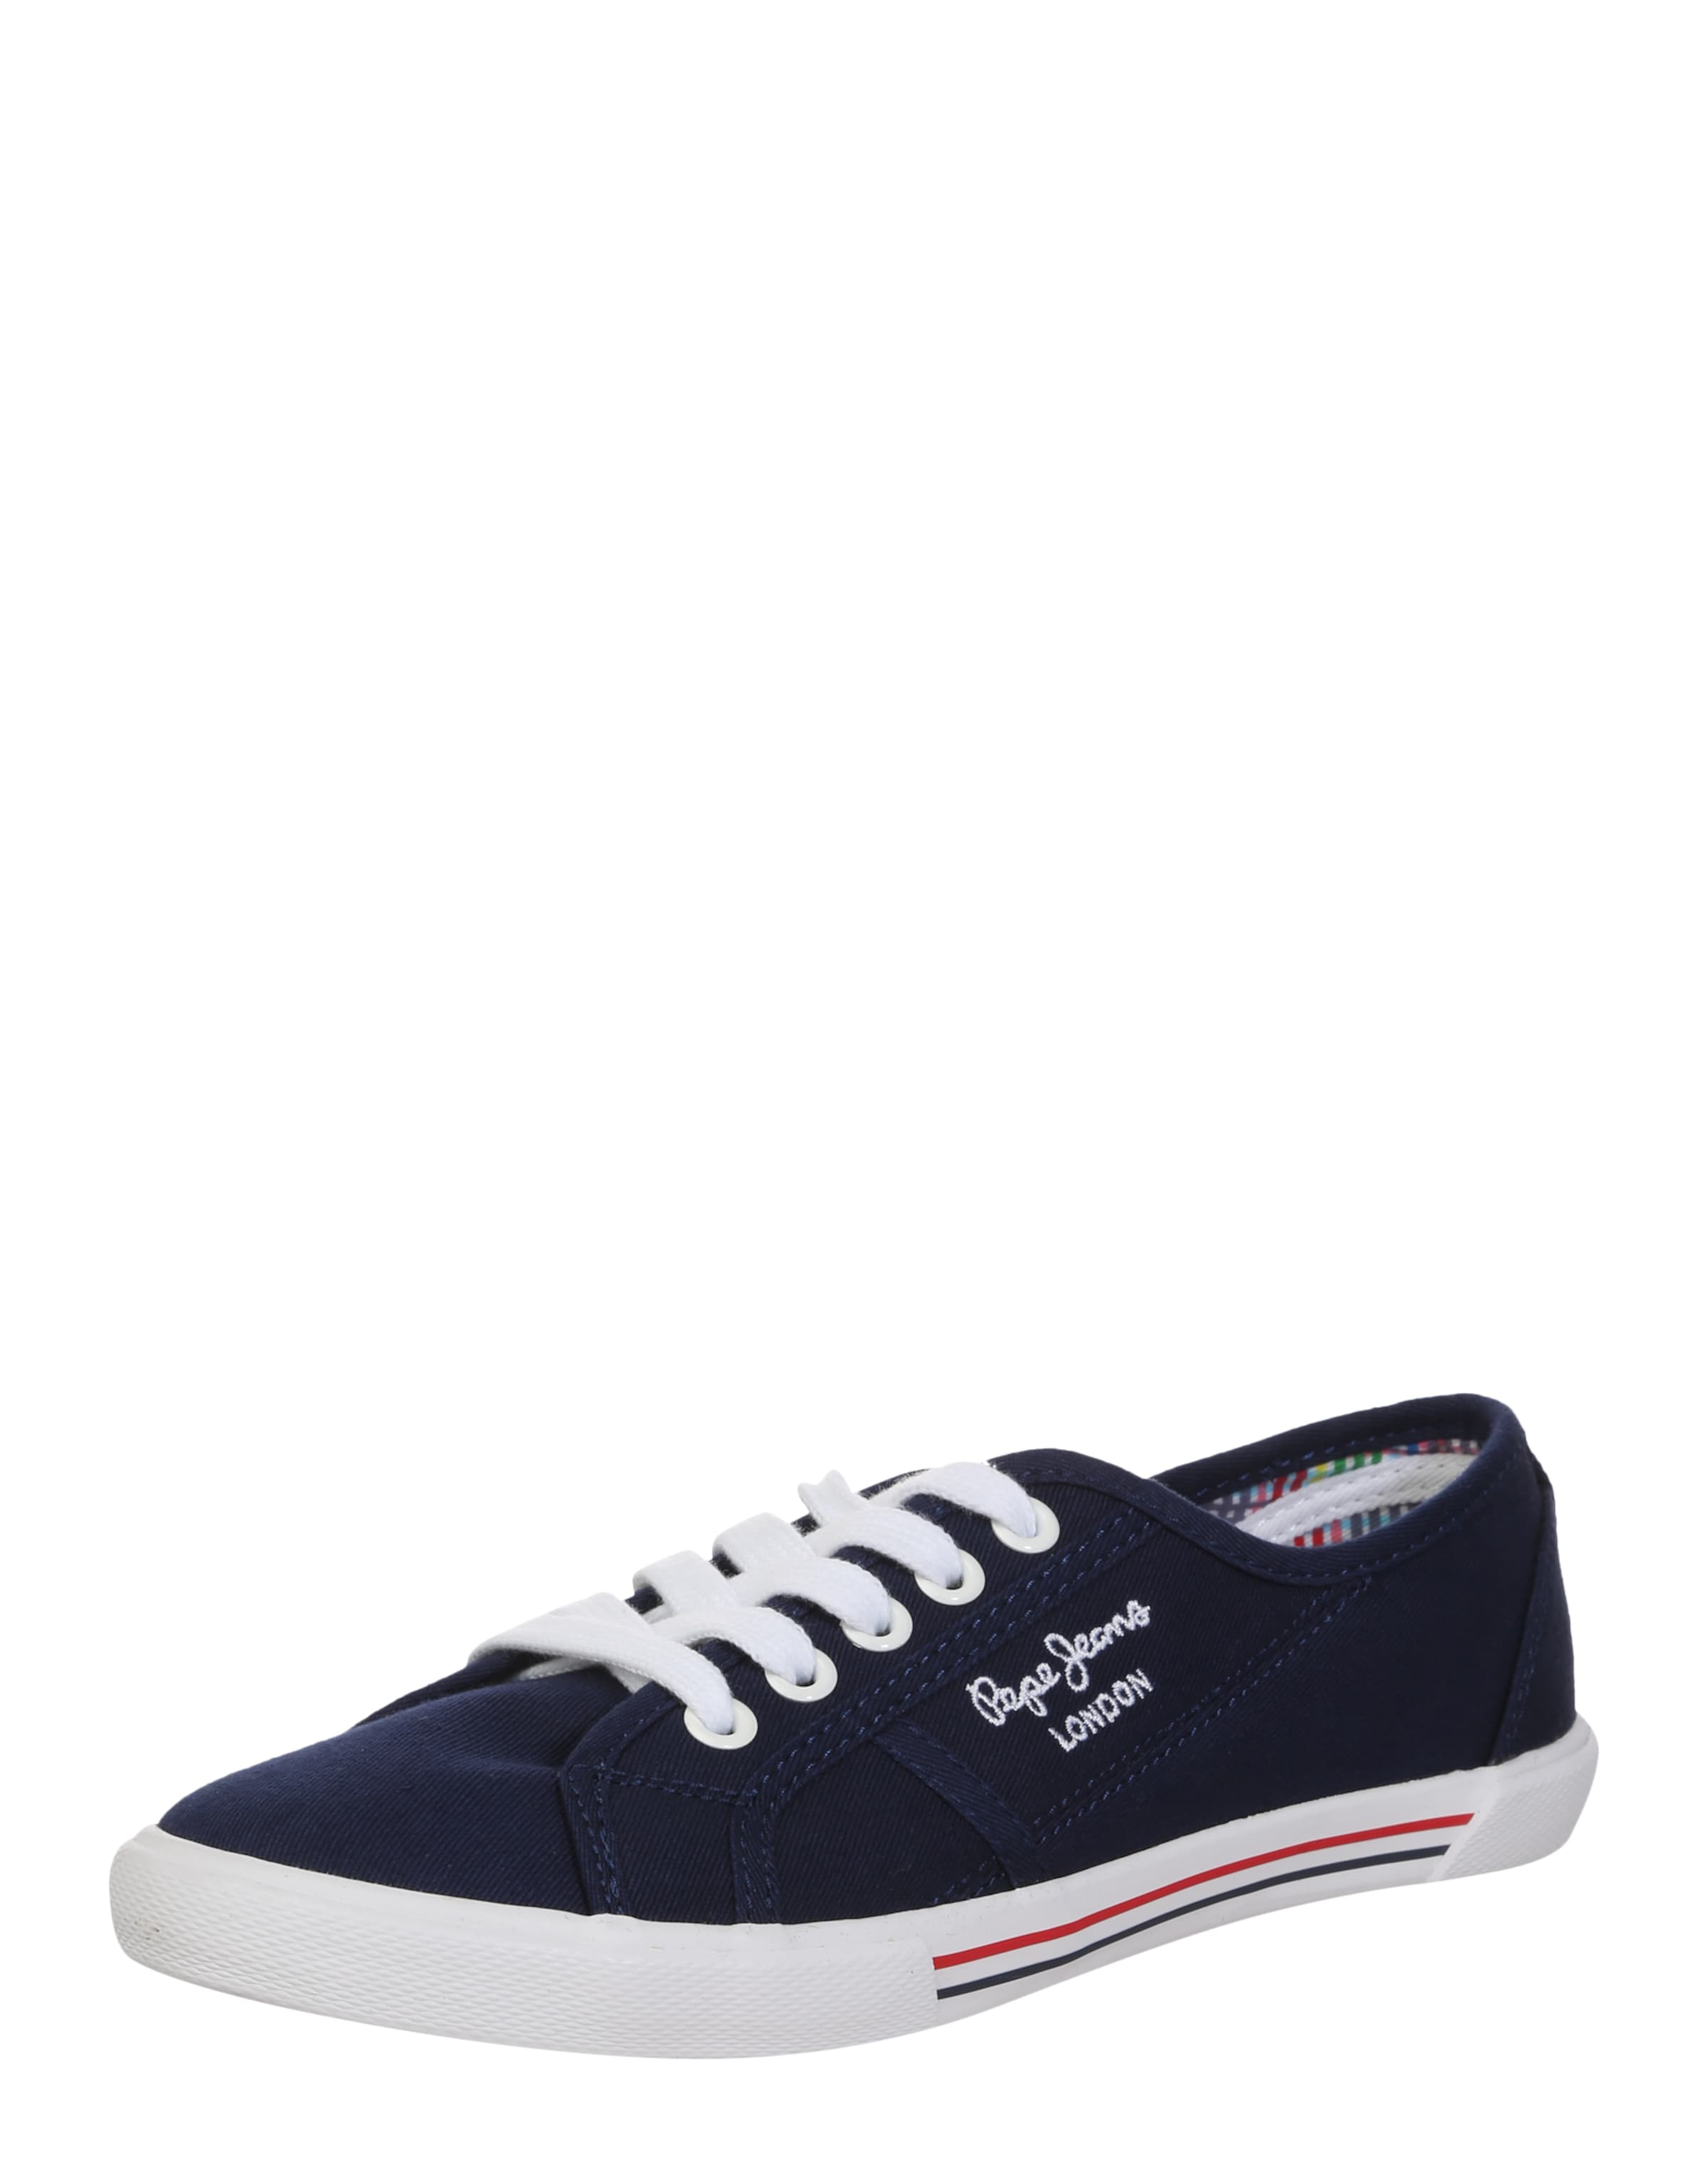 Pepe Jeans Sneaker in Canvas-Optik Hohe Qualität